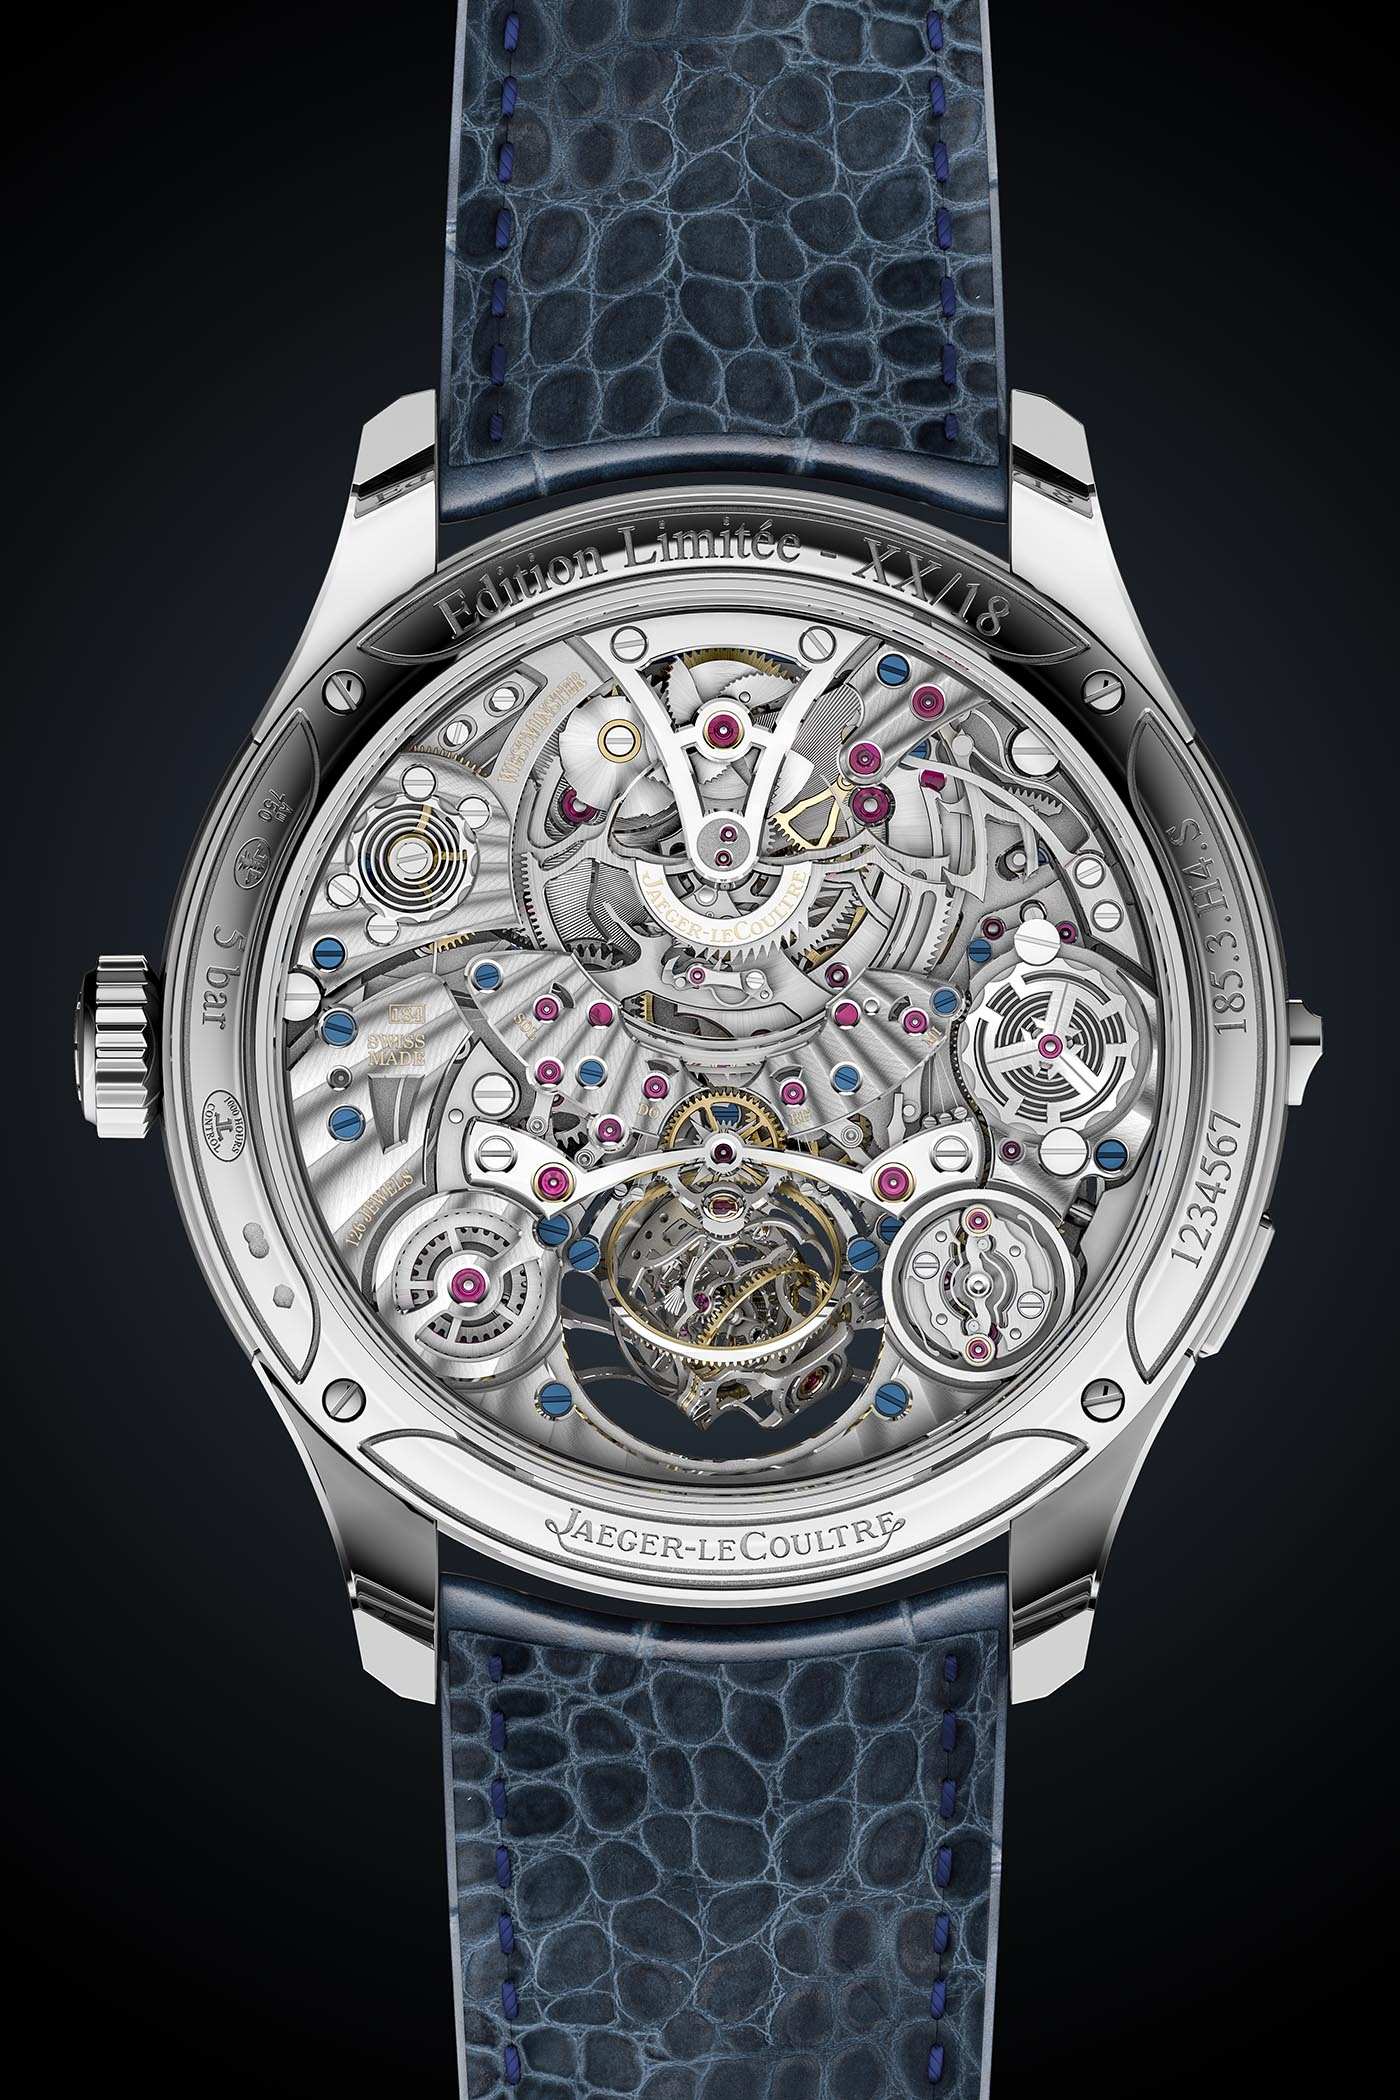 Jaeger-LeCoultre Master Grande Tradition Gyrotourbillon Westminster Perpetuel - SIHH 2019 - 2